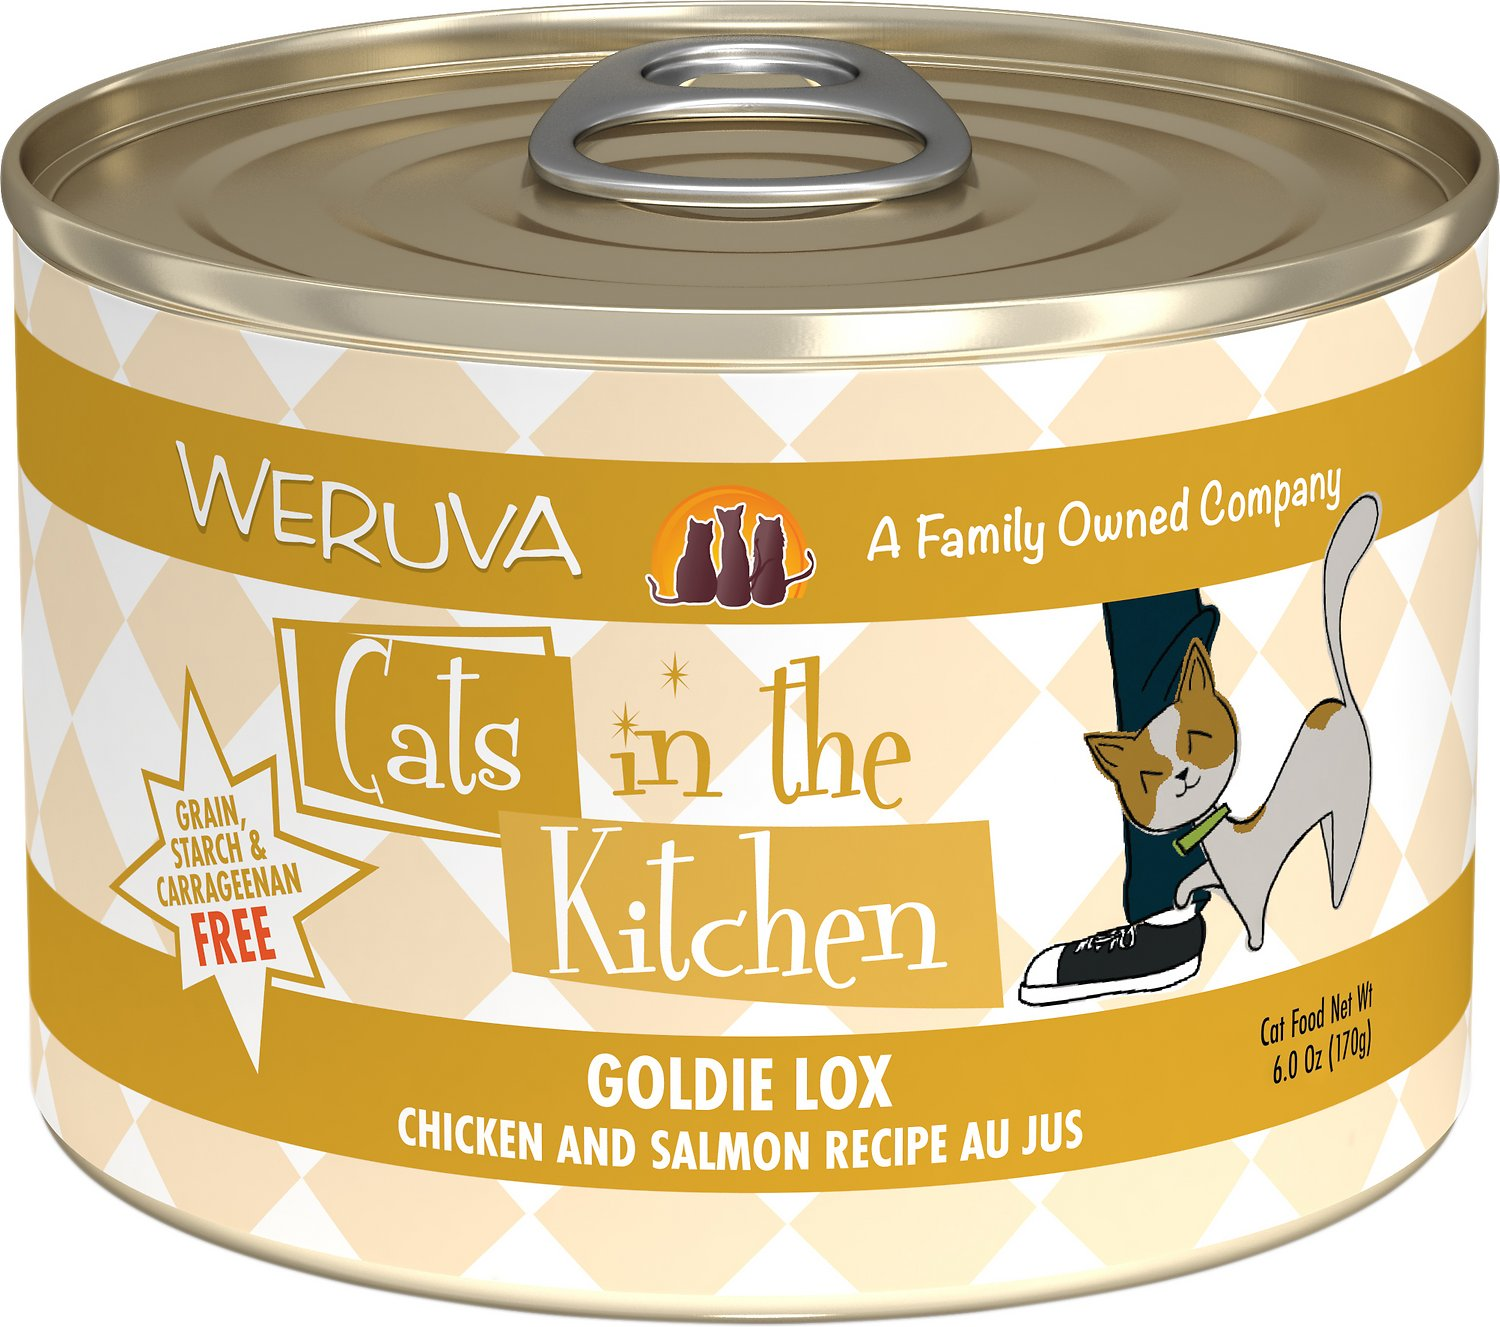 Weruva Cats in the Kitchen Goldie Lox Chicken & Salmon Au Jus Grain-Free Wet Cat Food, 6-oz